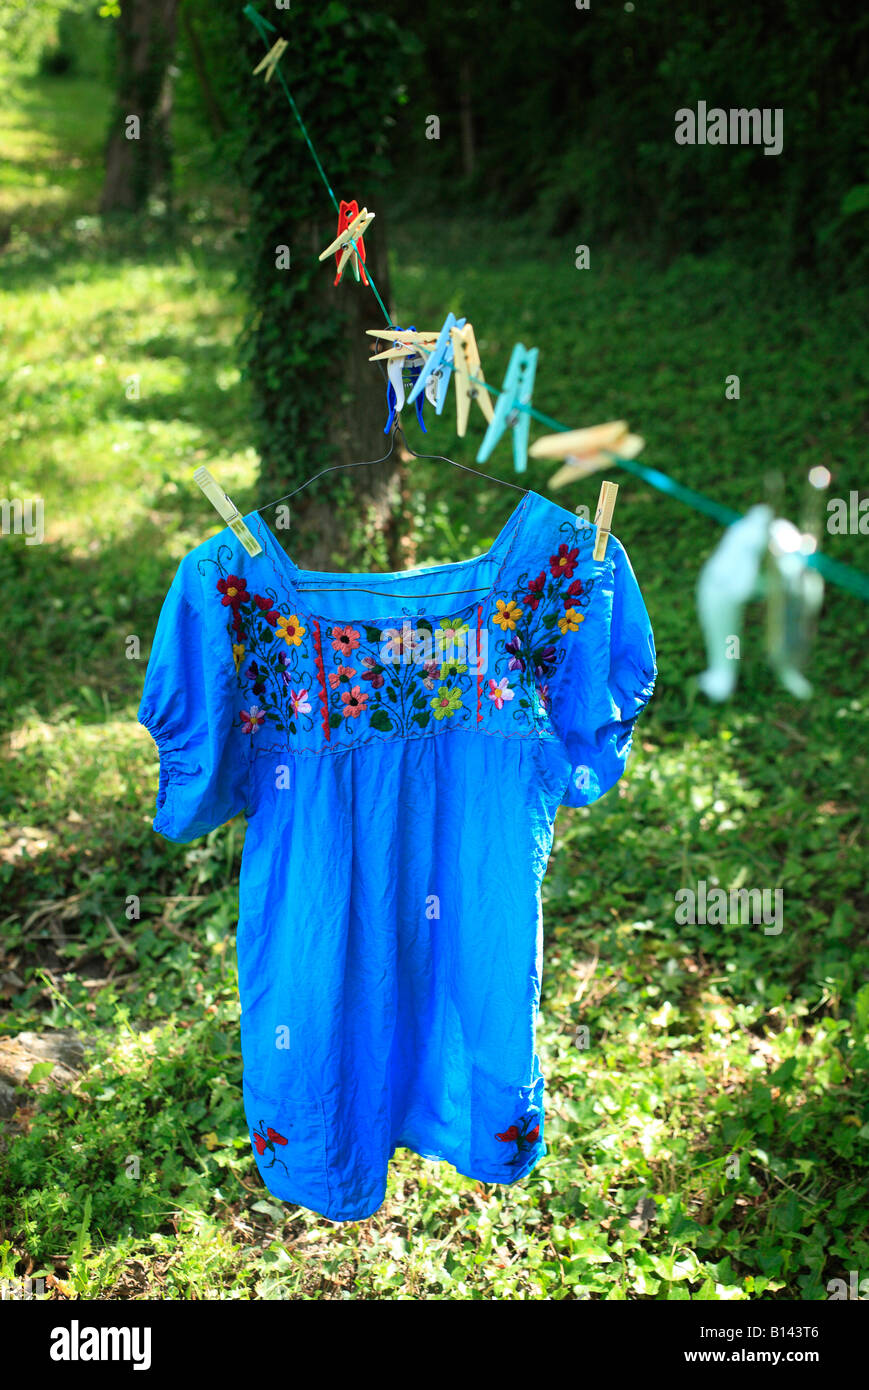 A blue blouse with flowers hanging on a clothesline in a green garden under trees in Le Thor, Provence, France - Stock Image